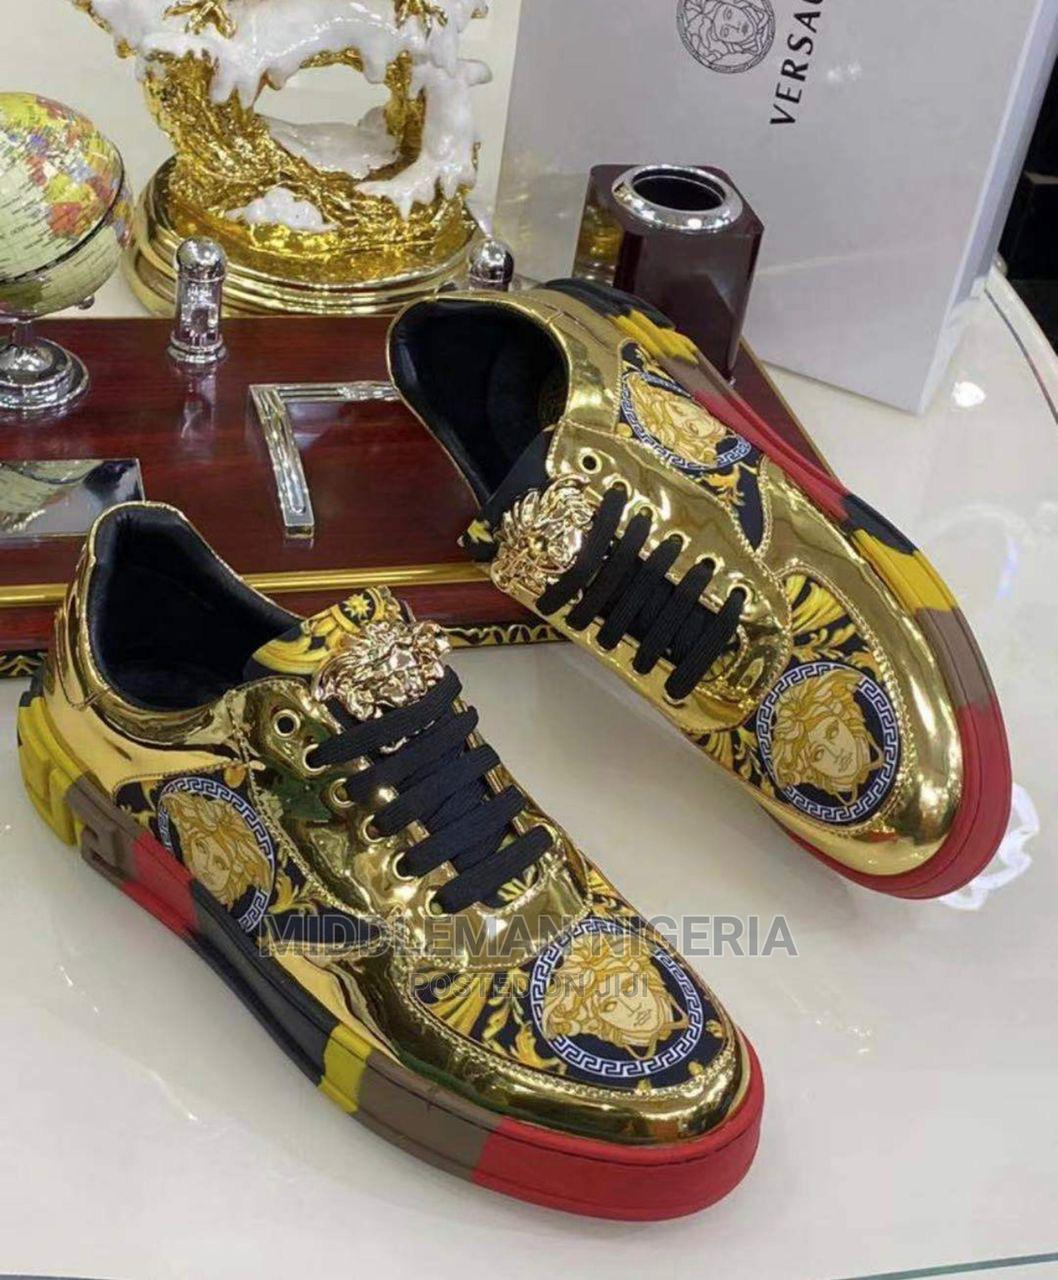 Gold GIANNI VERSACE Sneakers